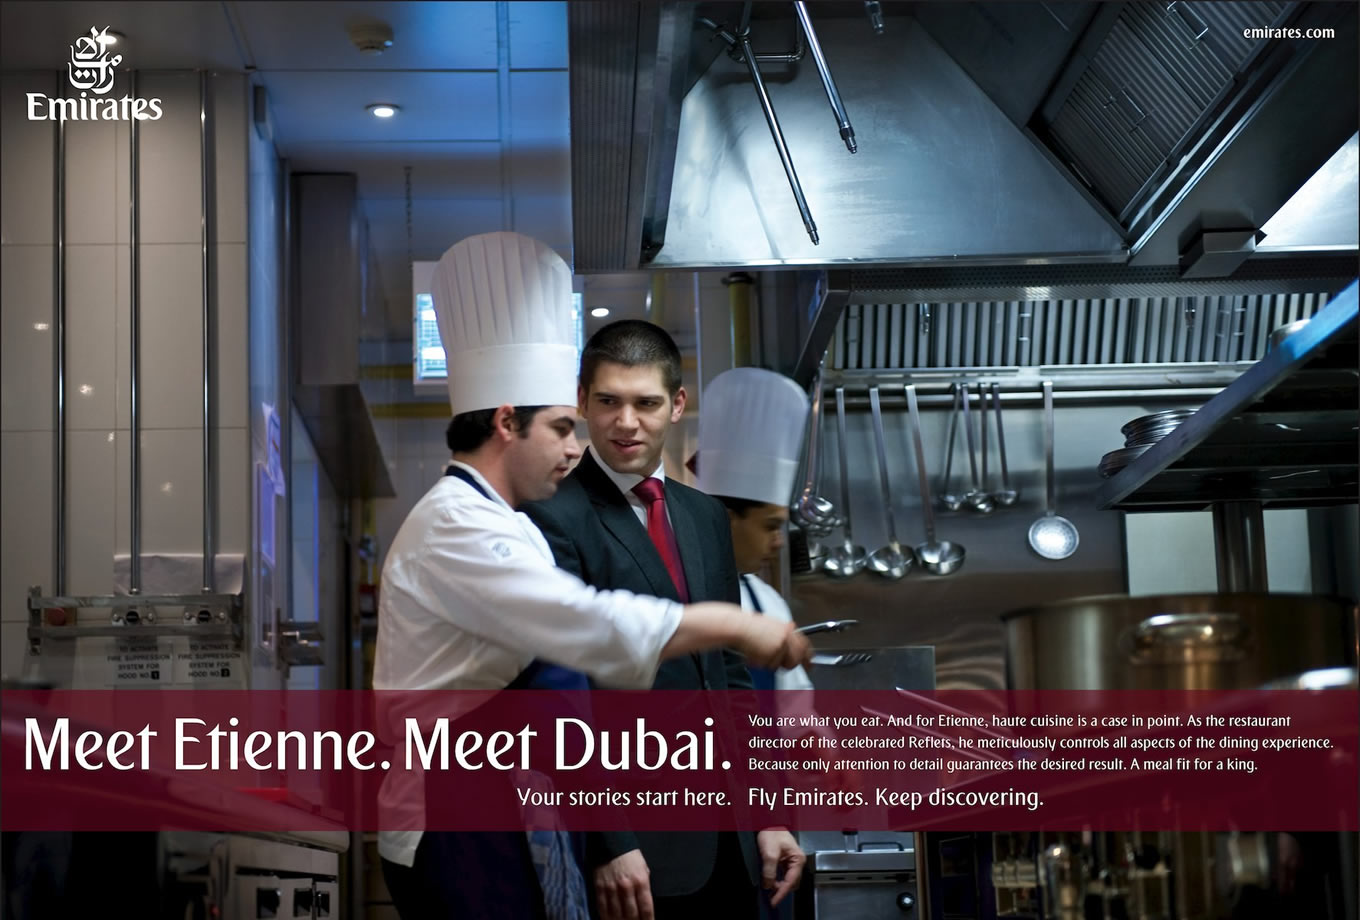 Meet Etienne, Meet Dubai Advertising Campaign by Emirates